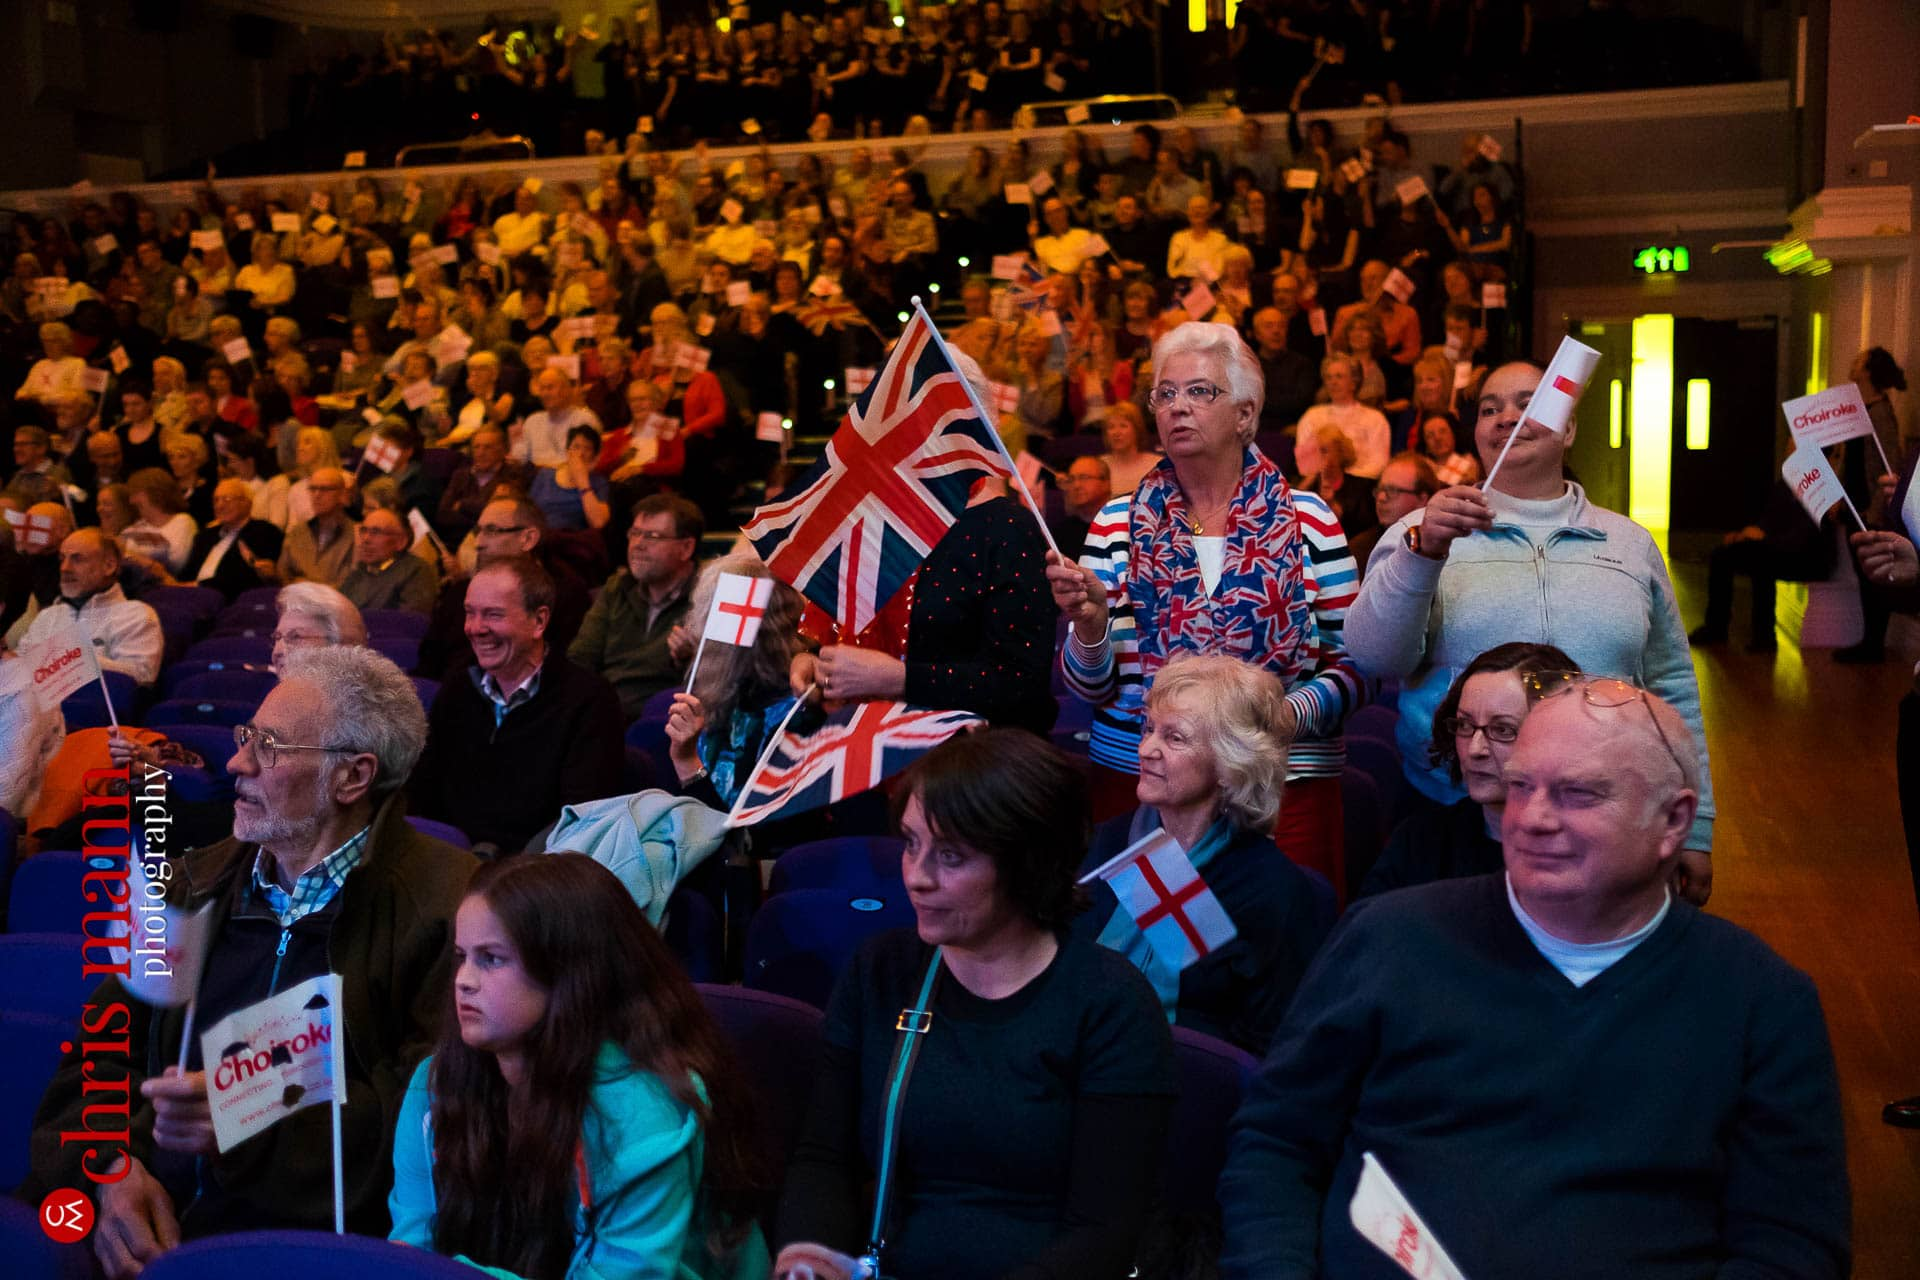 Patriotic audience wave flags St George's Day Choiroke 2016 concert Dorking Halls